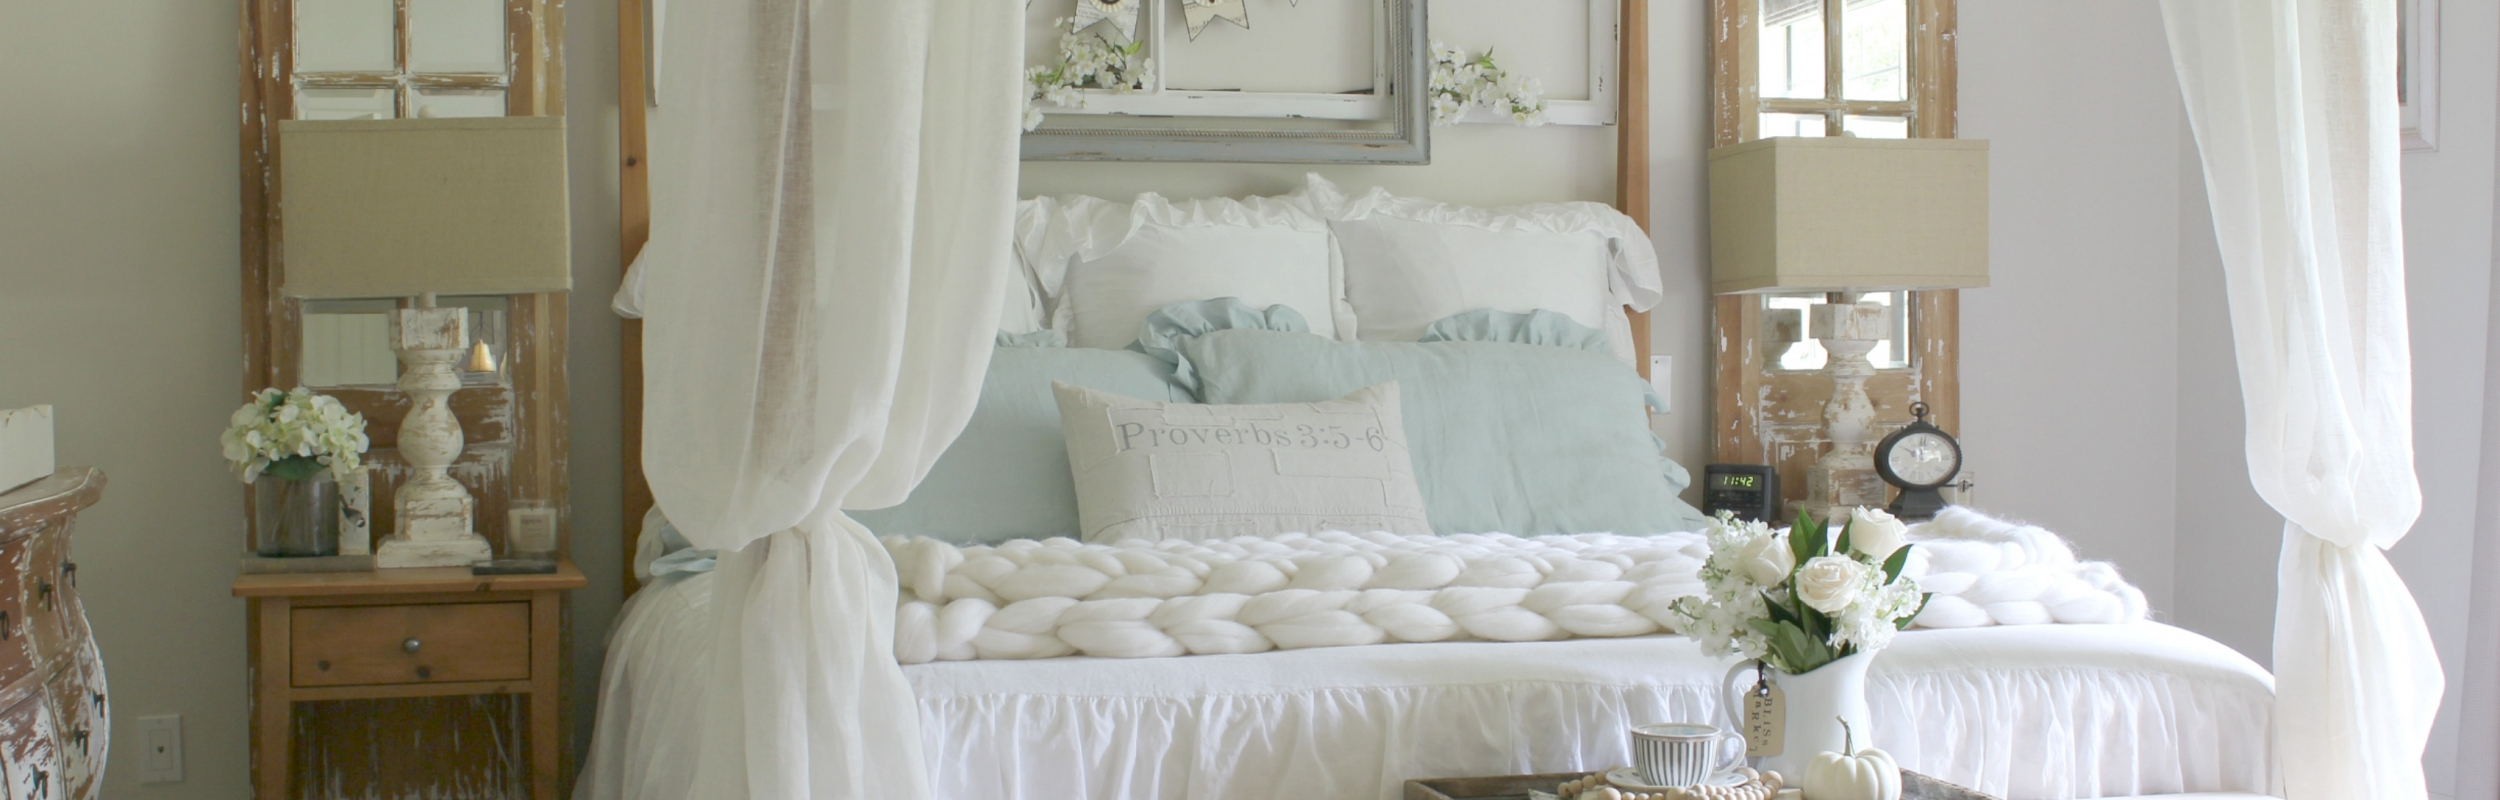 The Design Twins | DIY Home Decor Inspiration Blog - Inspiring ...